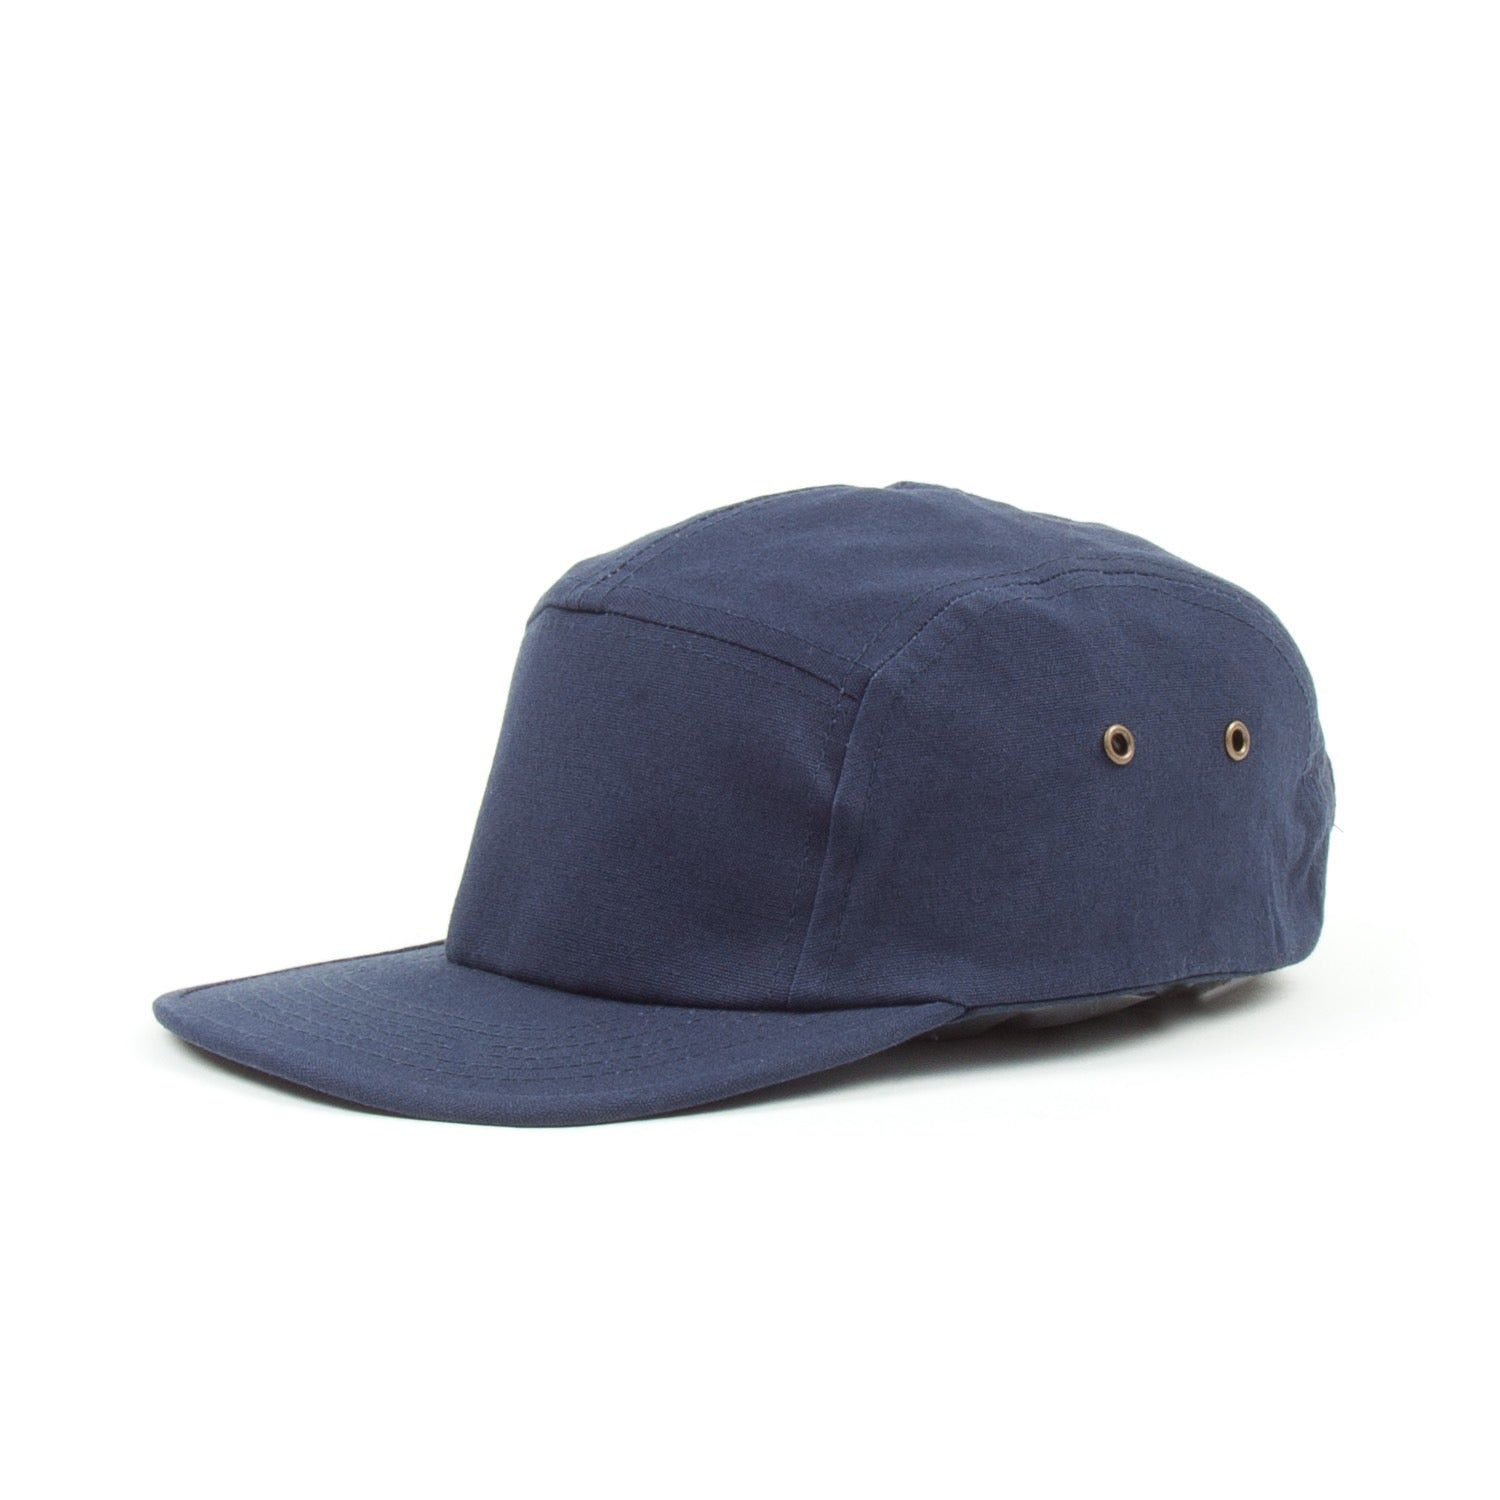 Sixes 5 Panel Stealth Cap (Navy)-1